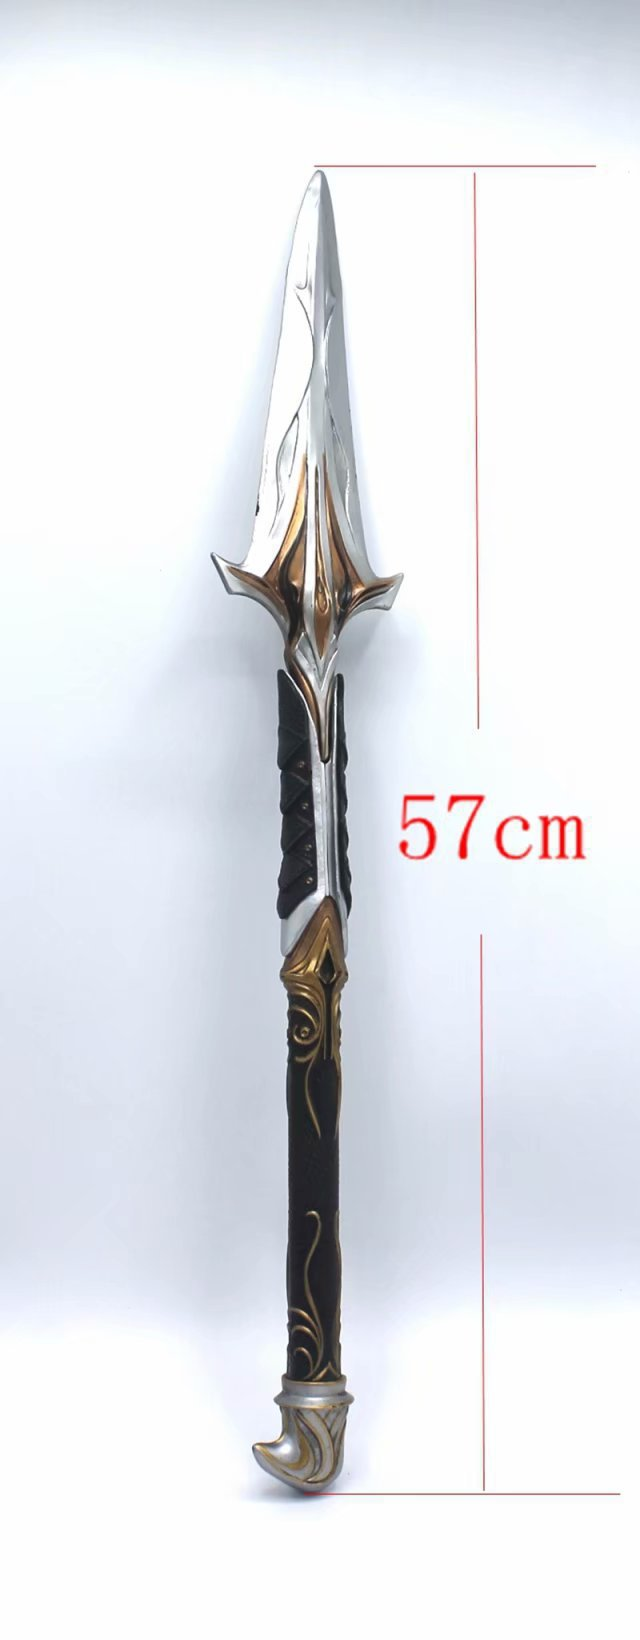 Assassin's Creed Odyssey Column Aoni Darth Spear 9 Generation Sleeve Sword Ubisoft COS Sleeve Swords Sword Rod Garage Kit